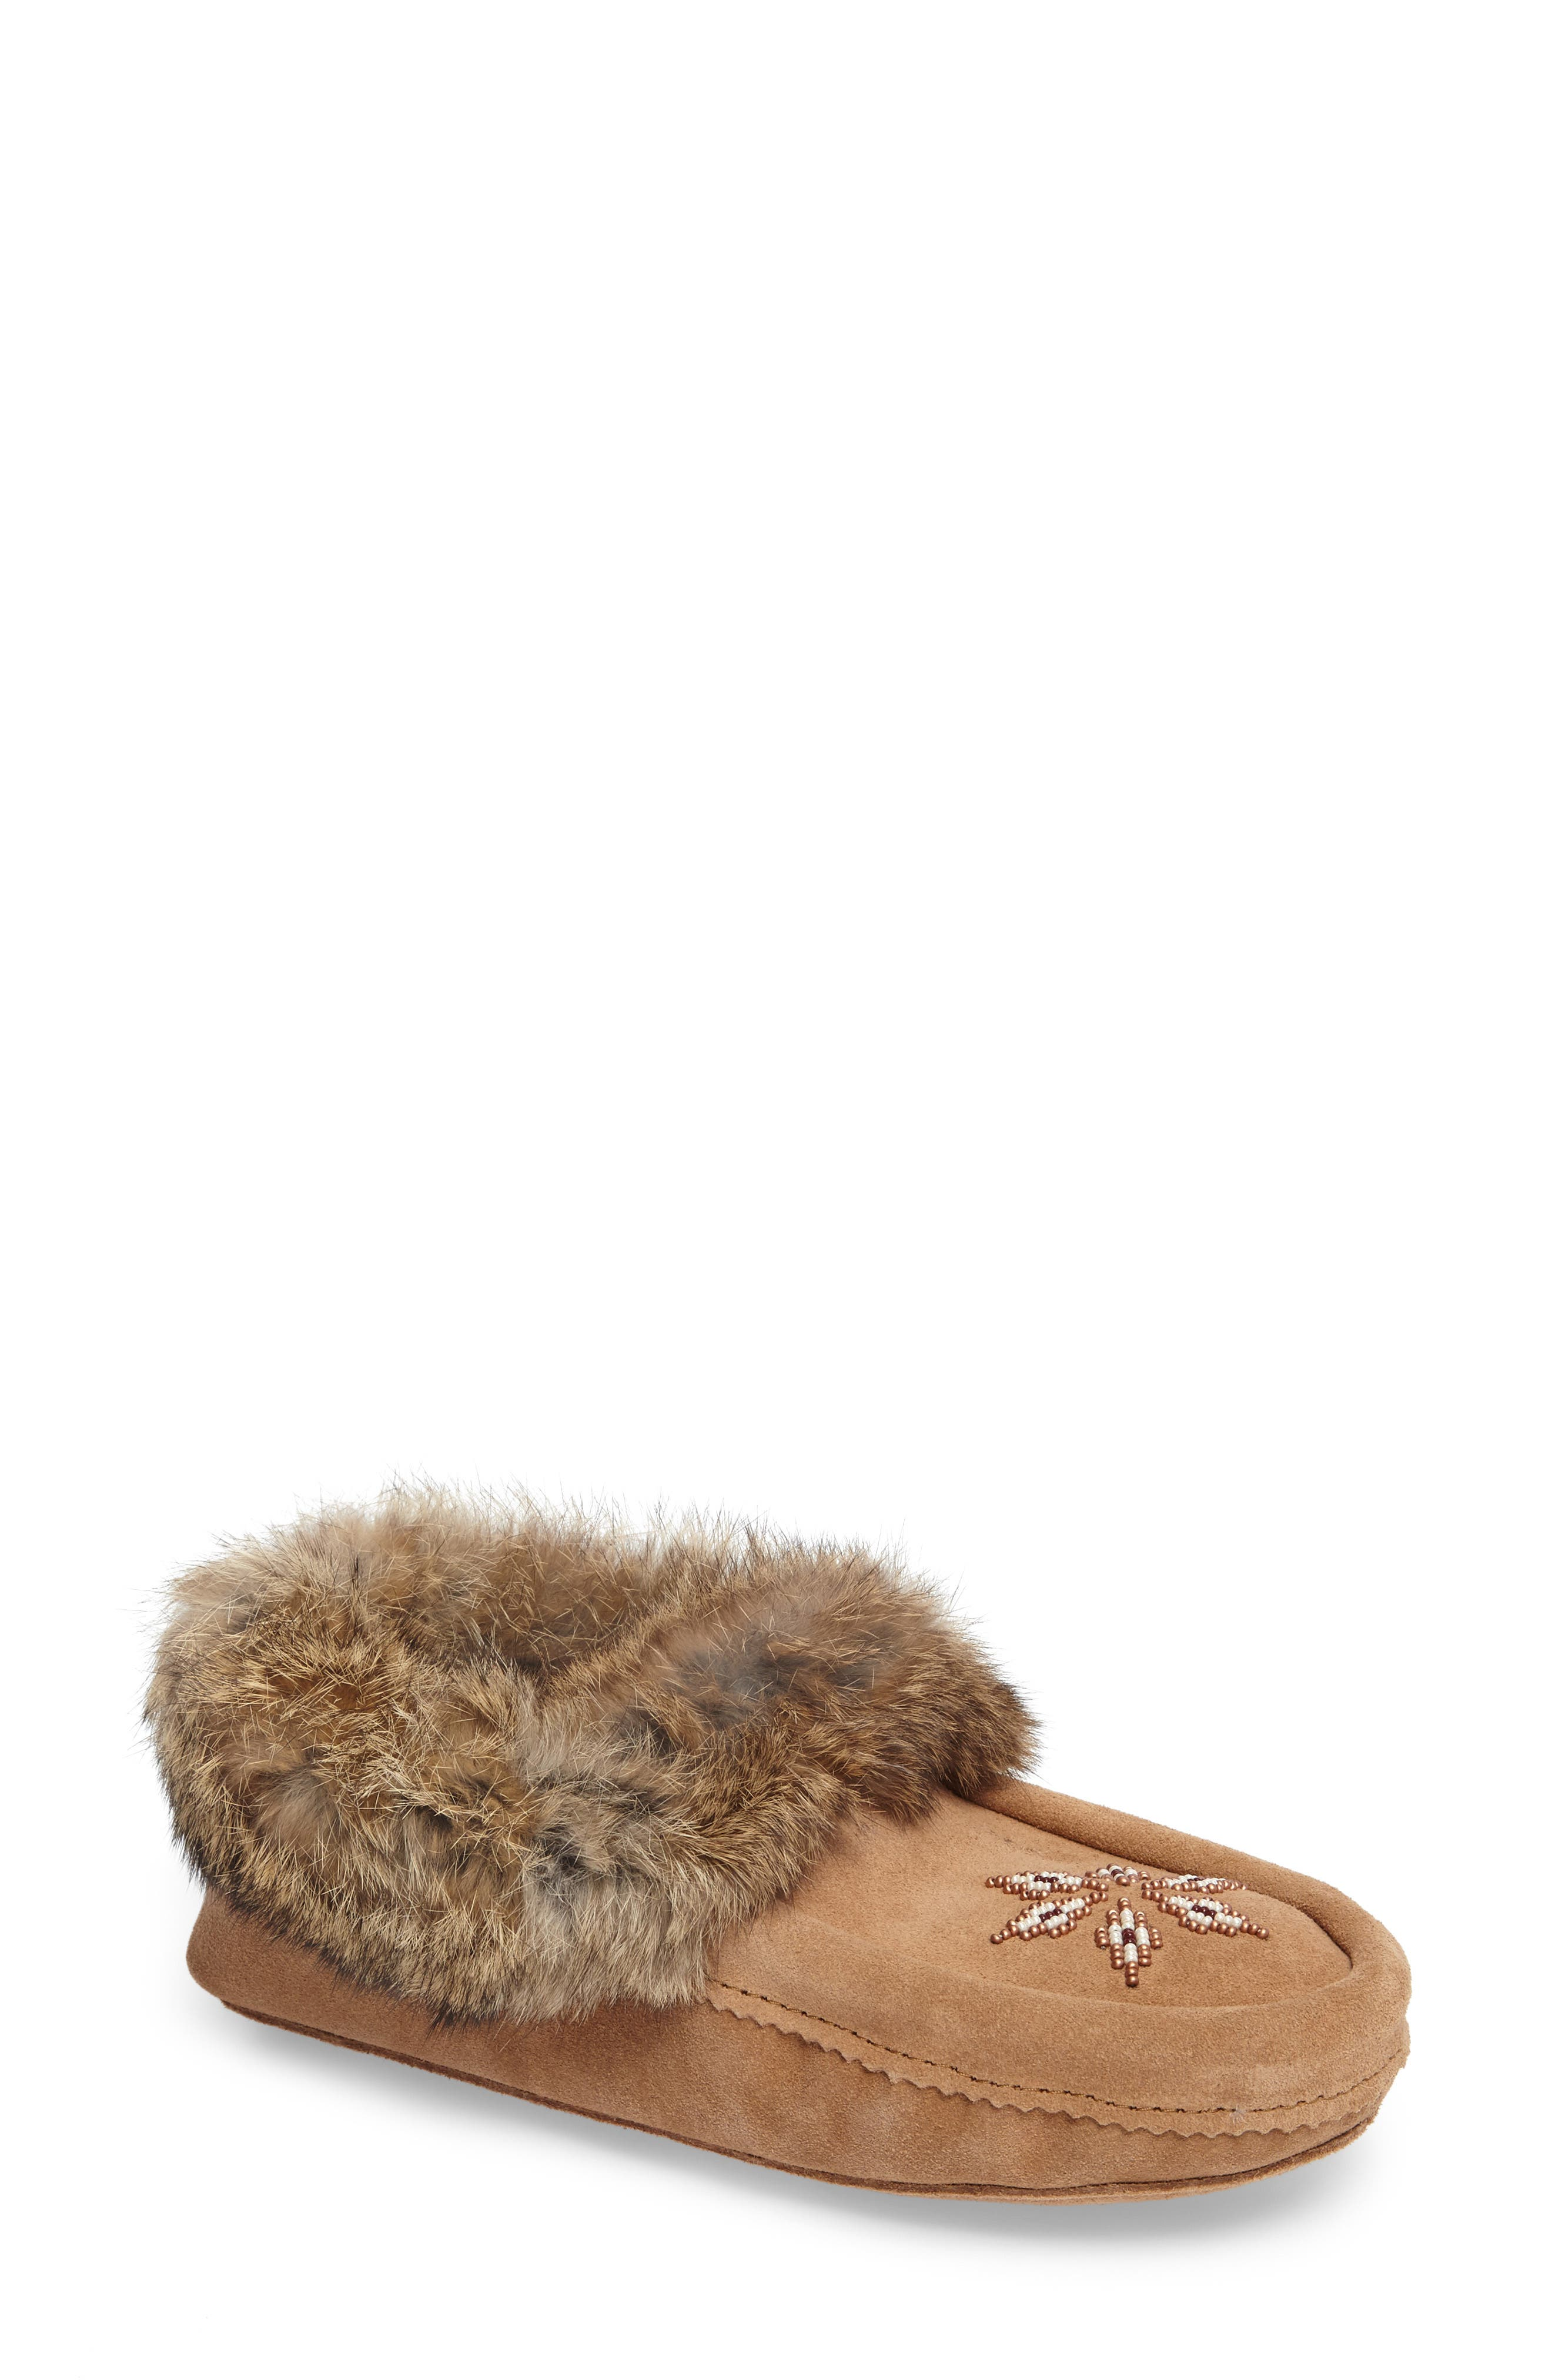 MANITOBAH MUKLUKS 'Kanada' Genuine Rabbit Fur & Suede Moccasin Slipper in Oak Fur